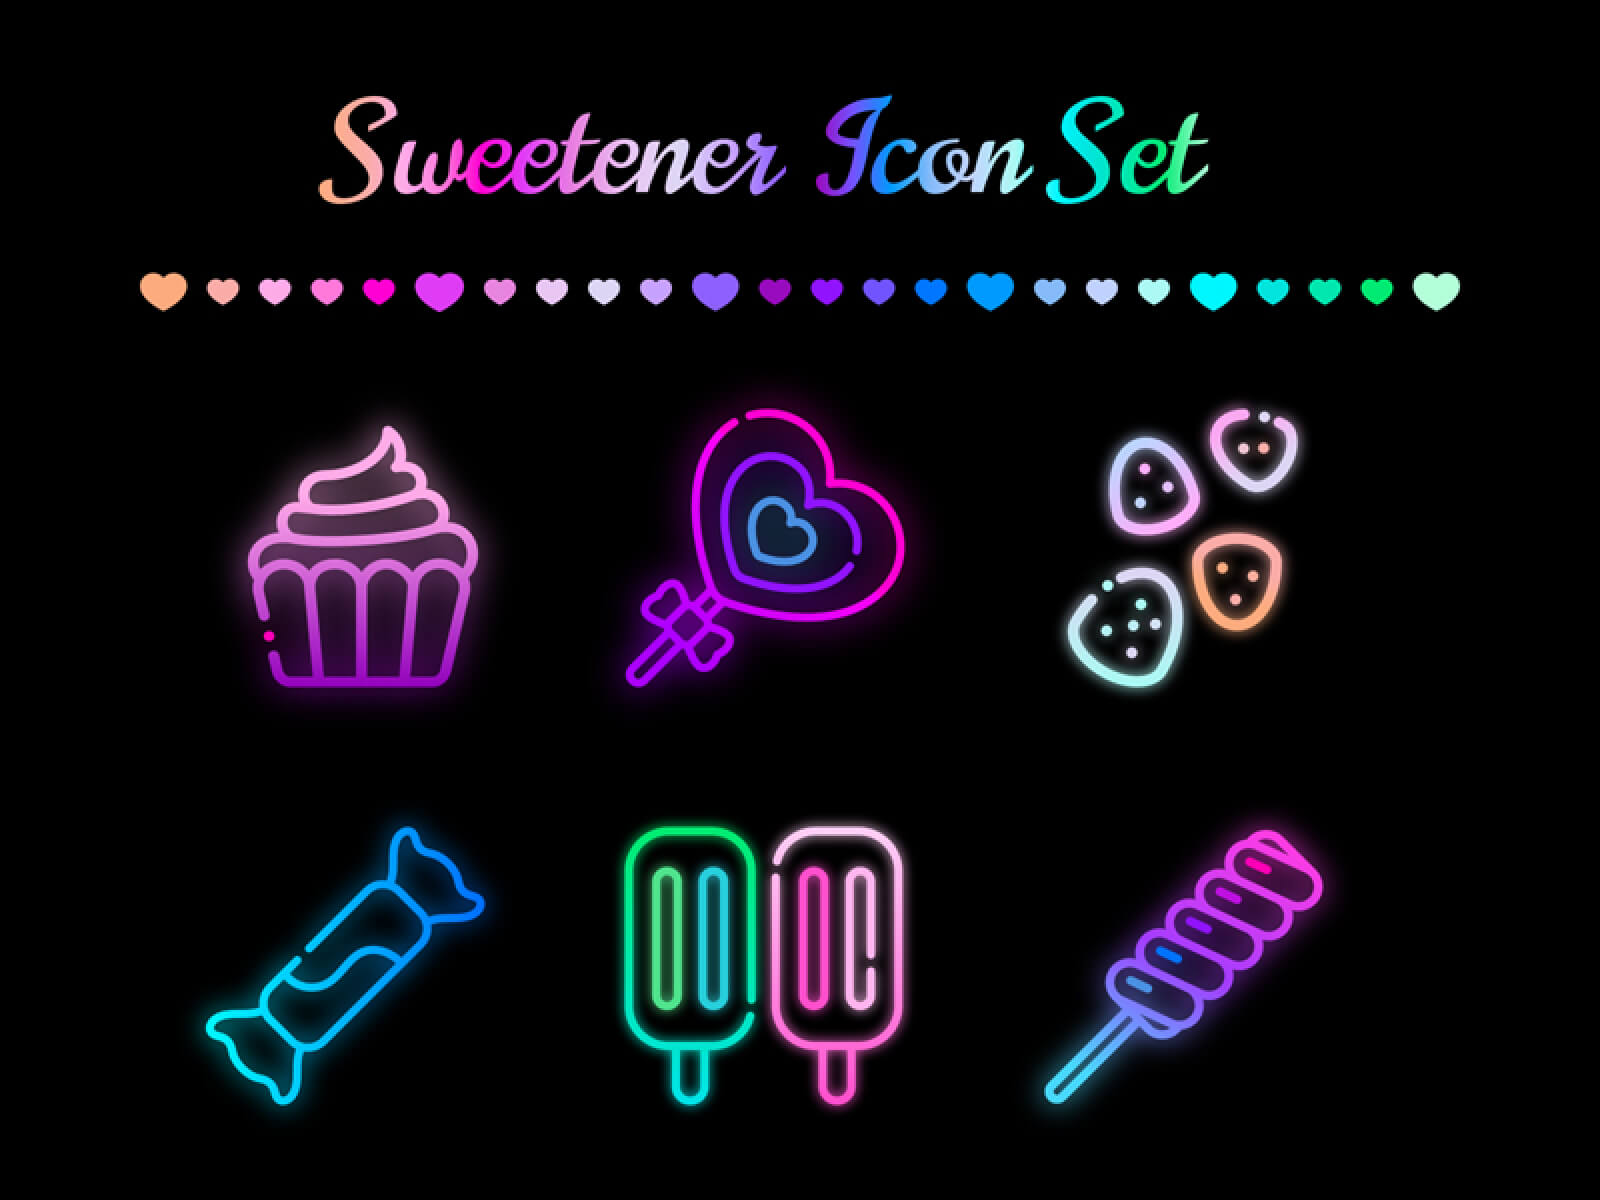 Candy Icons Set – Sweetener cover image